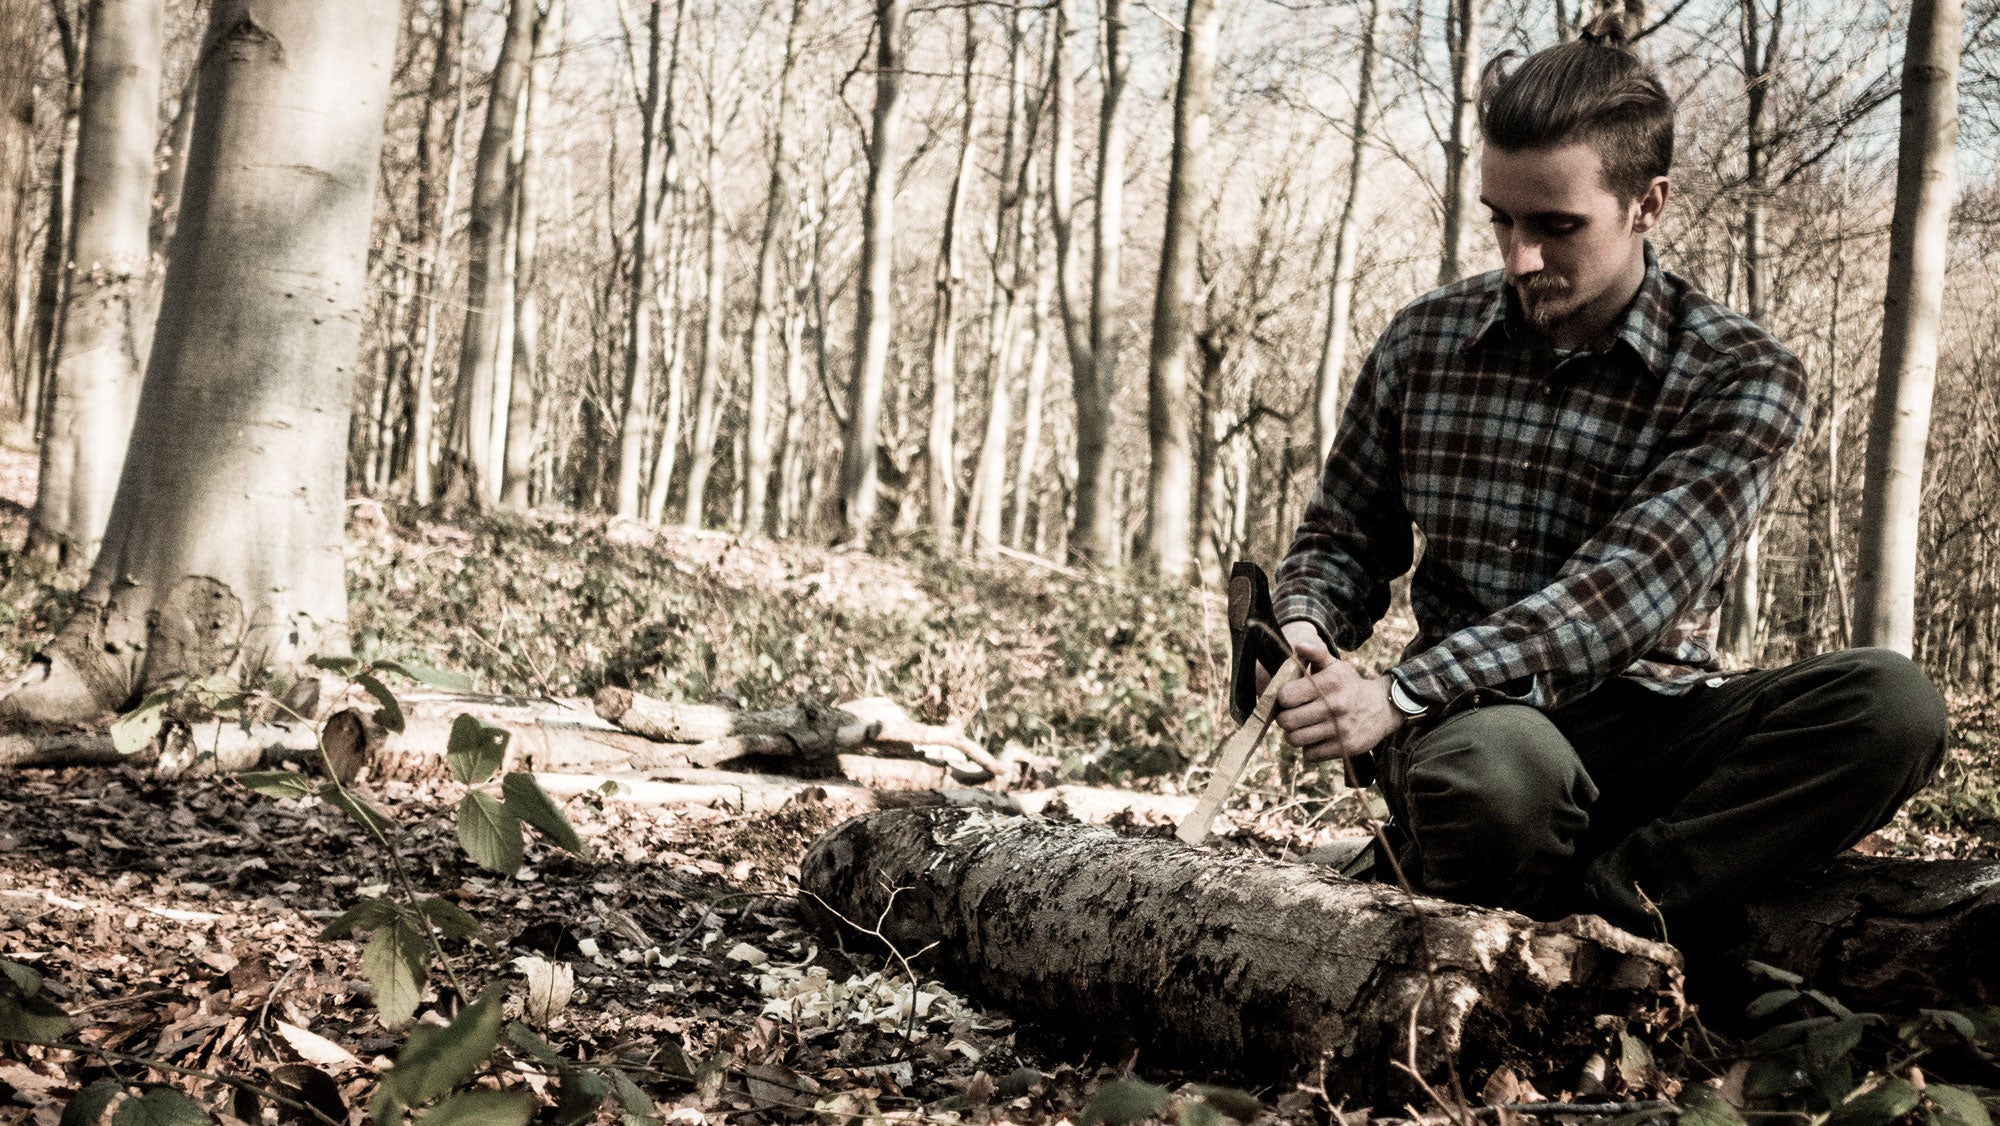 """""""Bushcraft is about thriving in the natural environment and the acquisition of the skills and knowledge to do so. Bushcraft skills include firecraft, tracking, hunting, fishing, shelter-building, the use of tools such as knives and axes, foraging, hand-carving wood, container construction from natural materials and rope and twine-making, among others."""" --Wikipedia"""